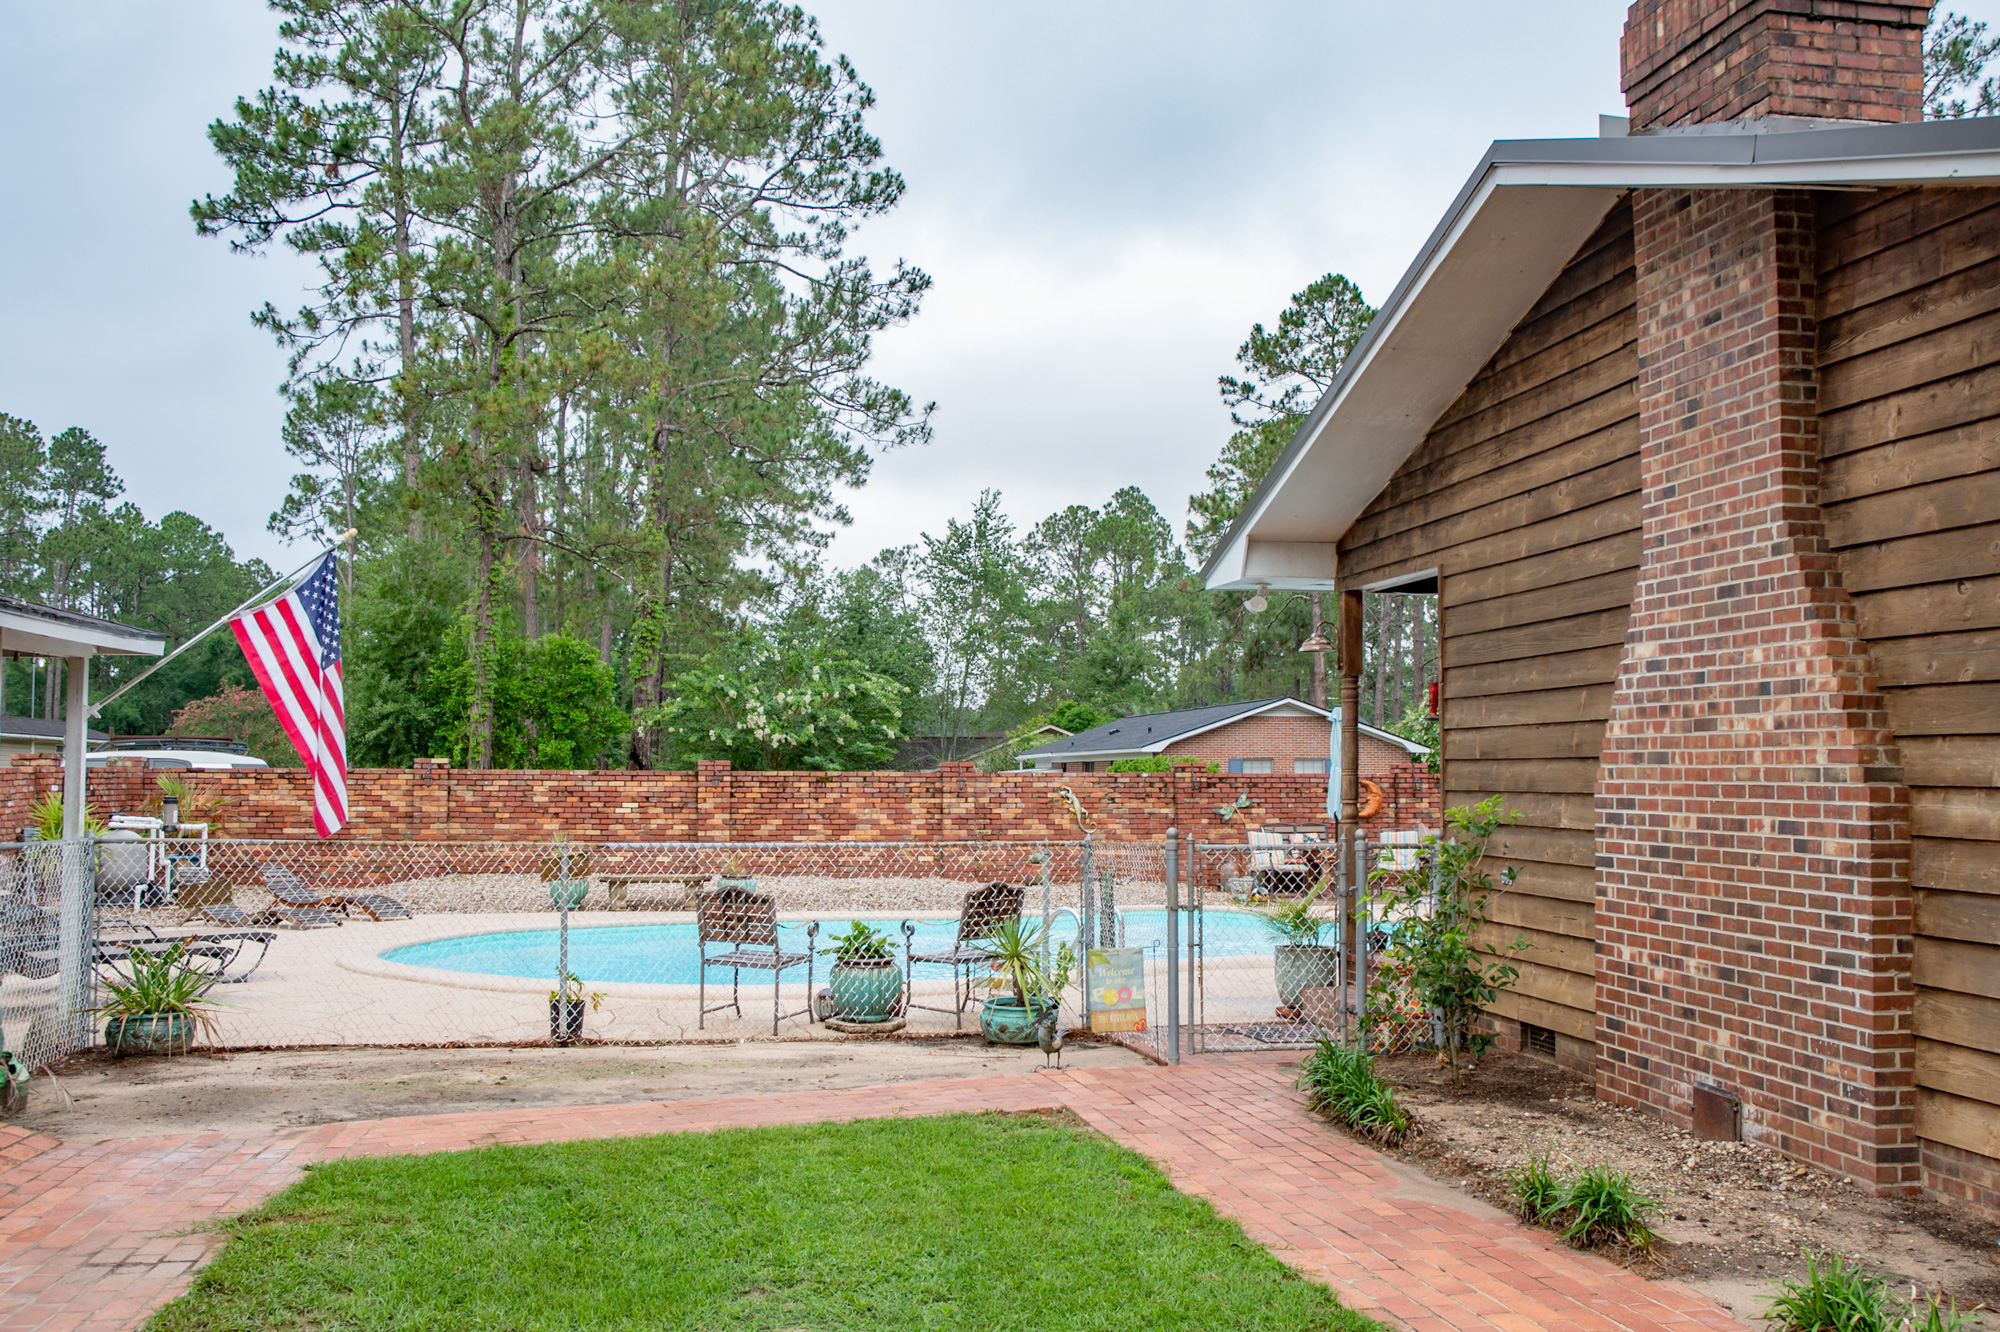 3-rivers-realty,3rr,911-morningside-drive,bainbridge-real-estate,bainbridggarealestate,mills-brock,three-rivers-realty,side-yard-pool.jpg